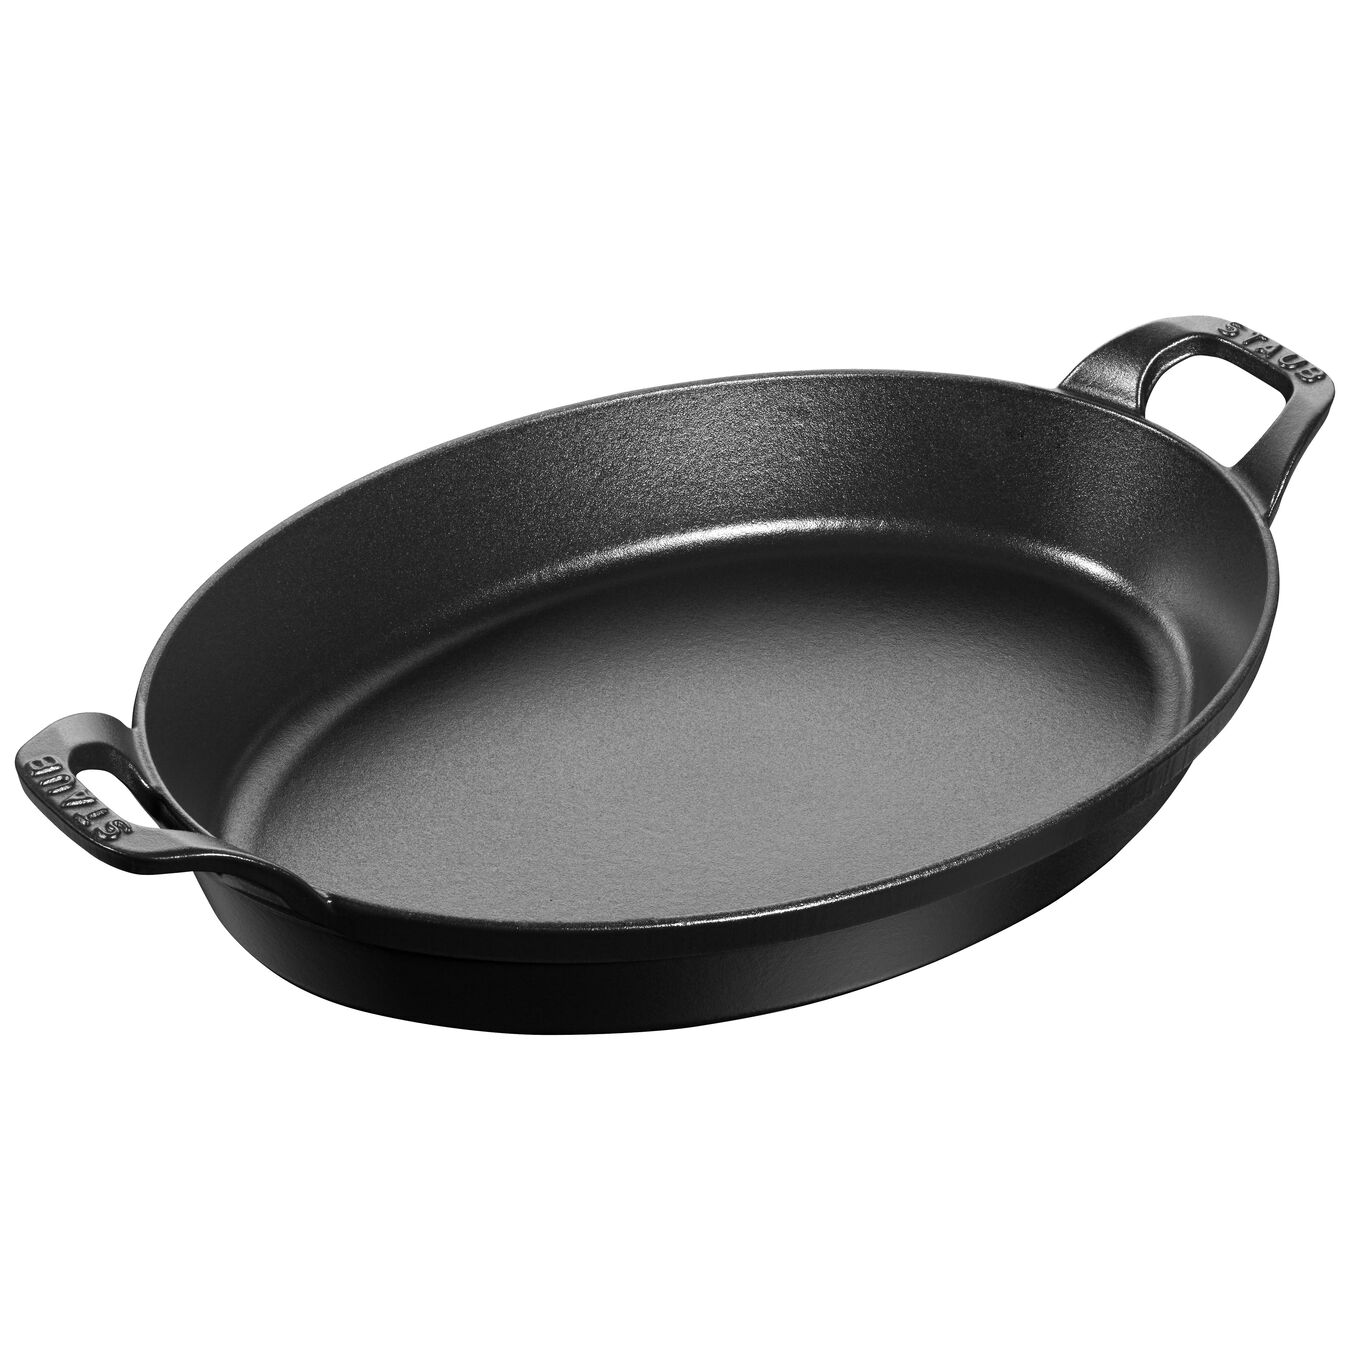 oval Oven dish, black,,large 1